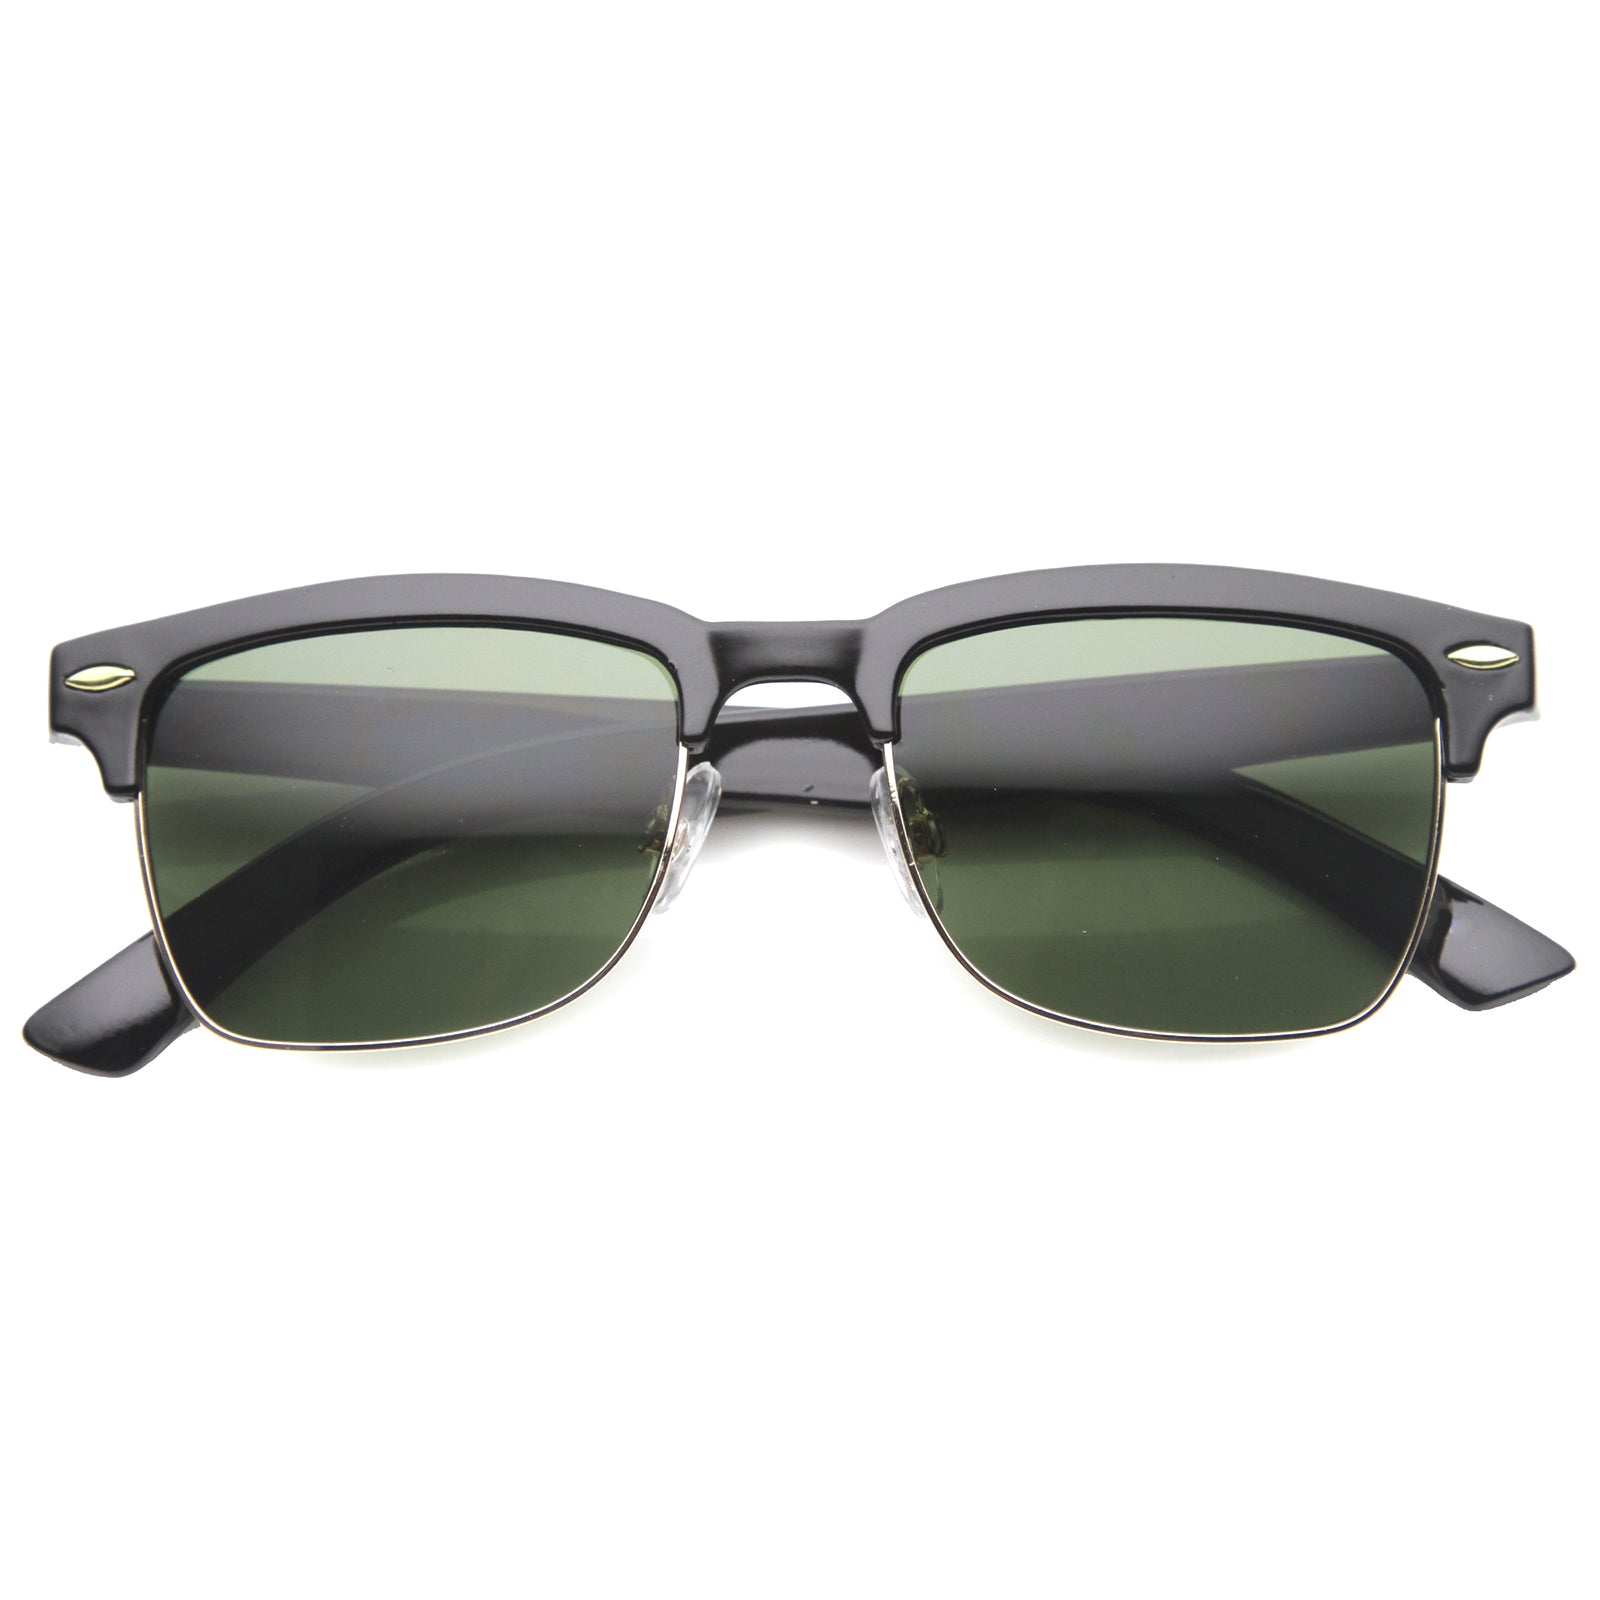 Mens Semi-Rimless Sunglasses With UV400 Protected Composite Lens - sunglass.la - 5